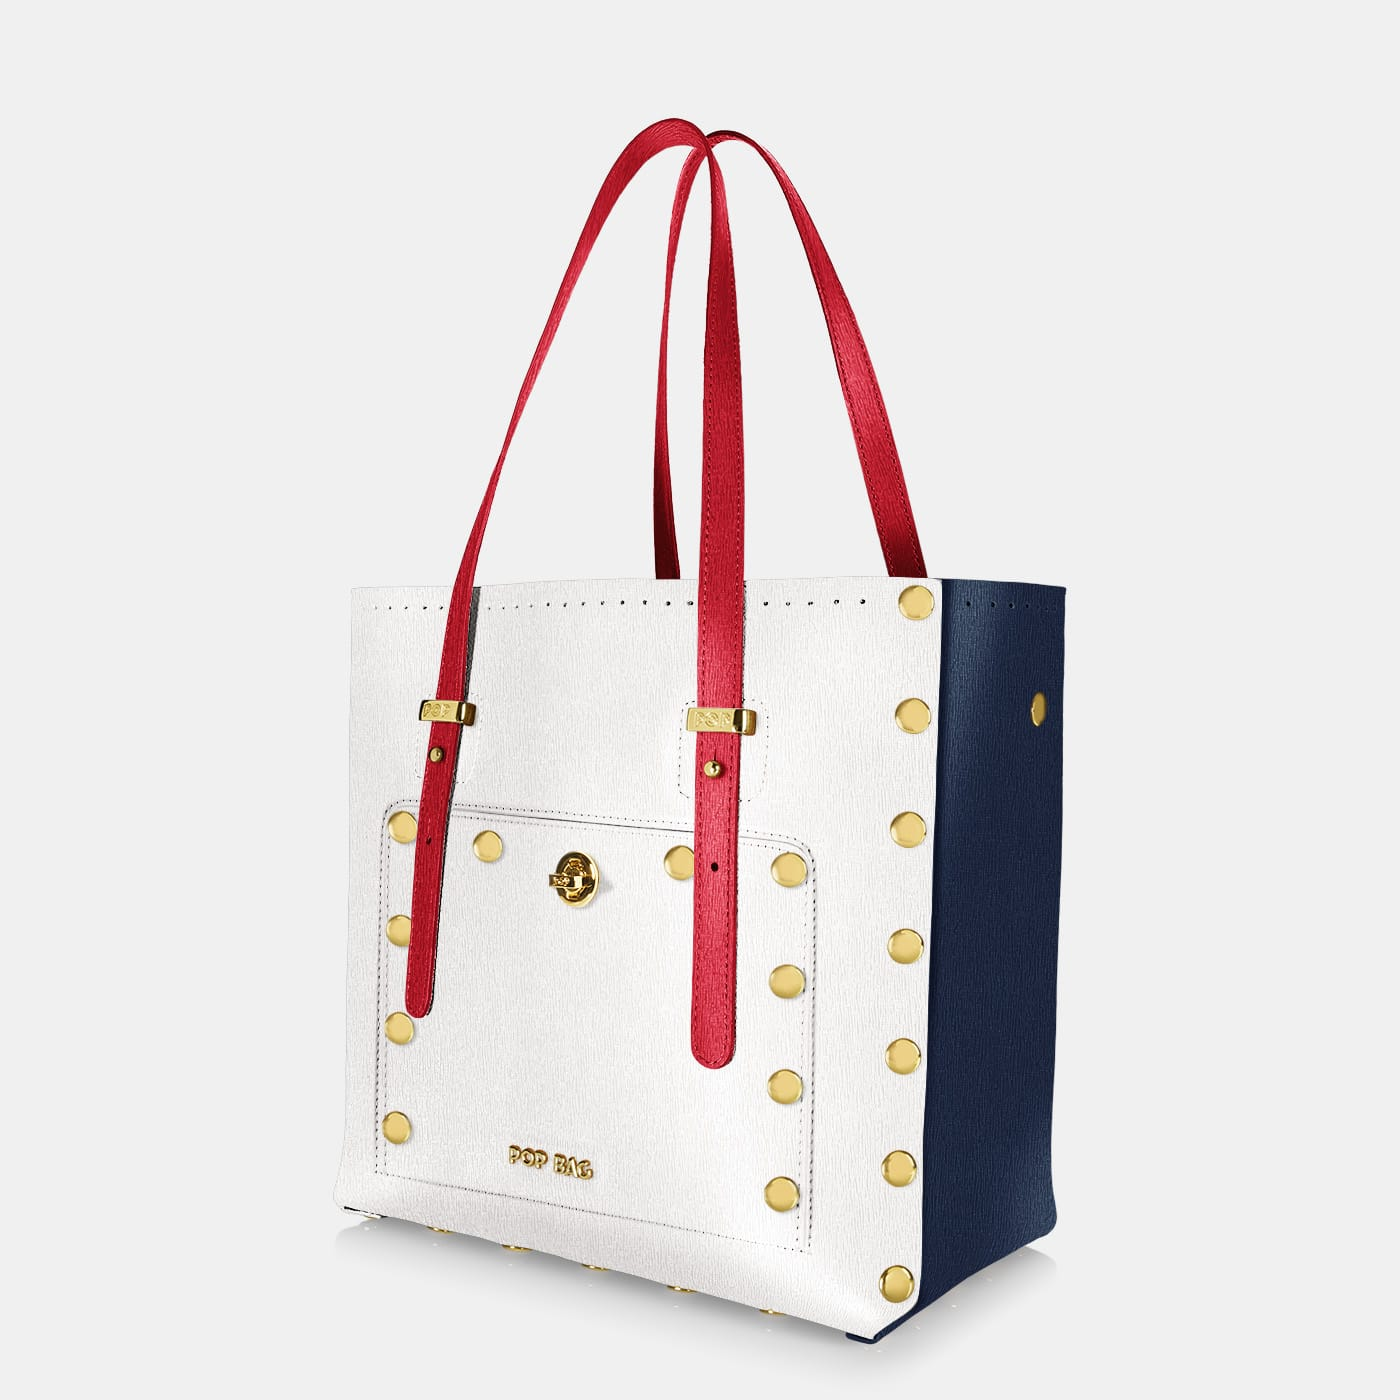 Pop Sailor Bag - White - Dark Blue - Red - Medium - Side View